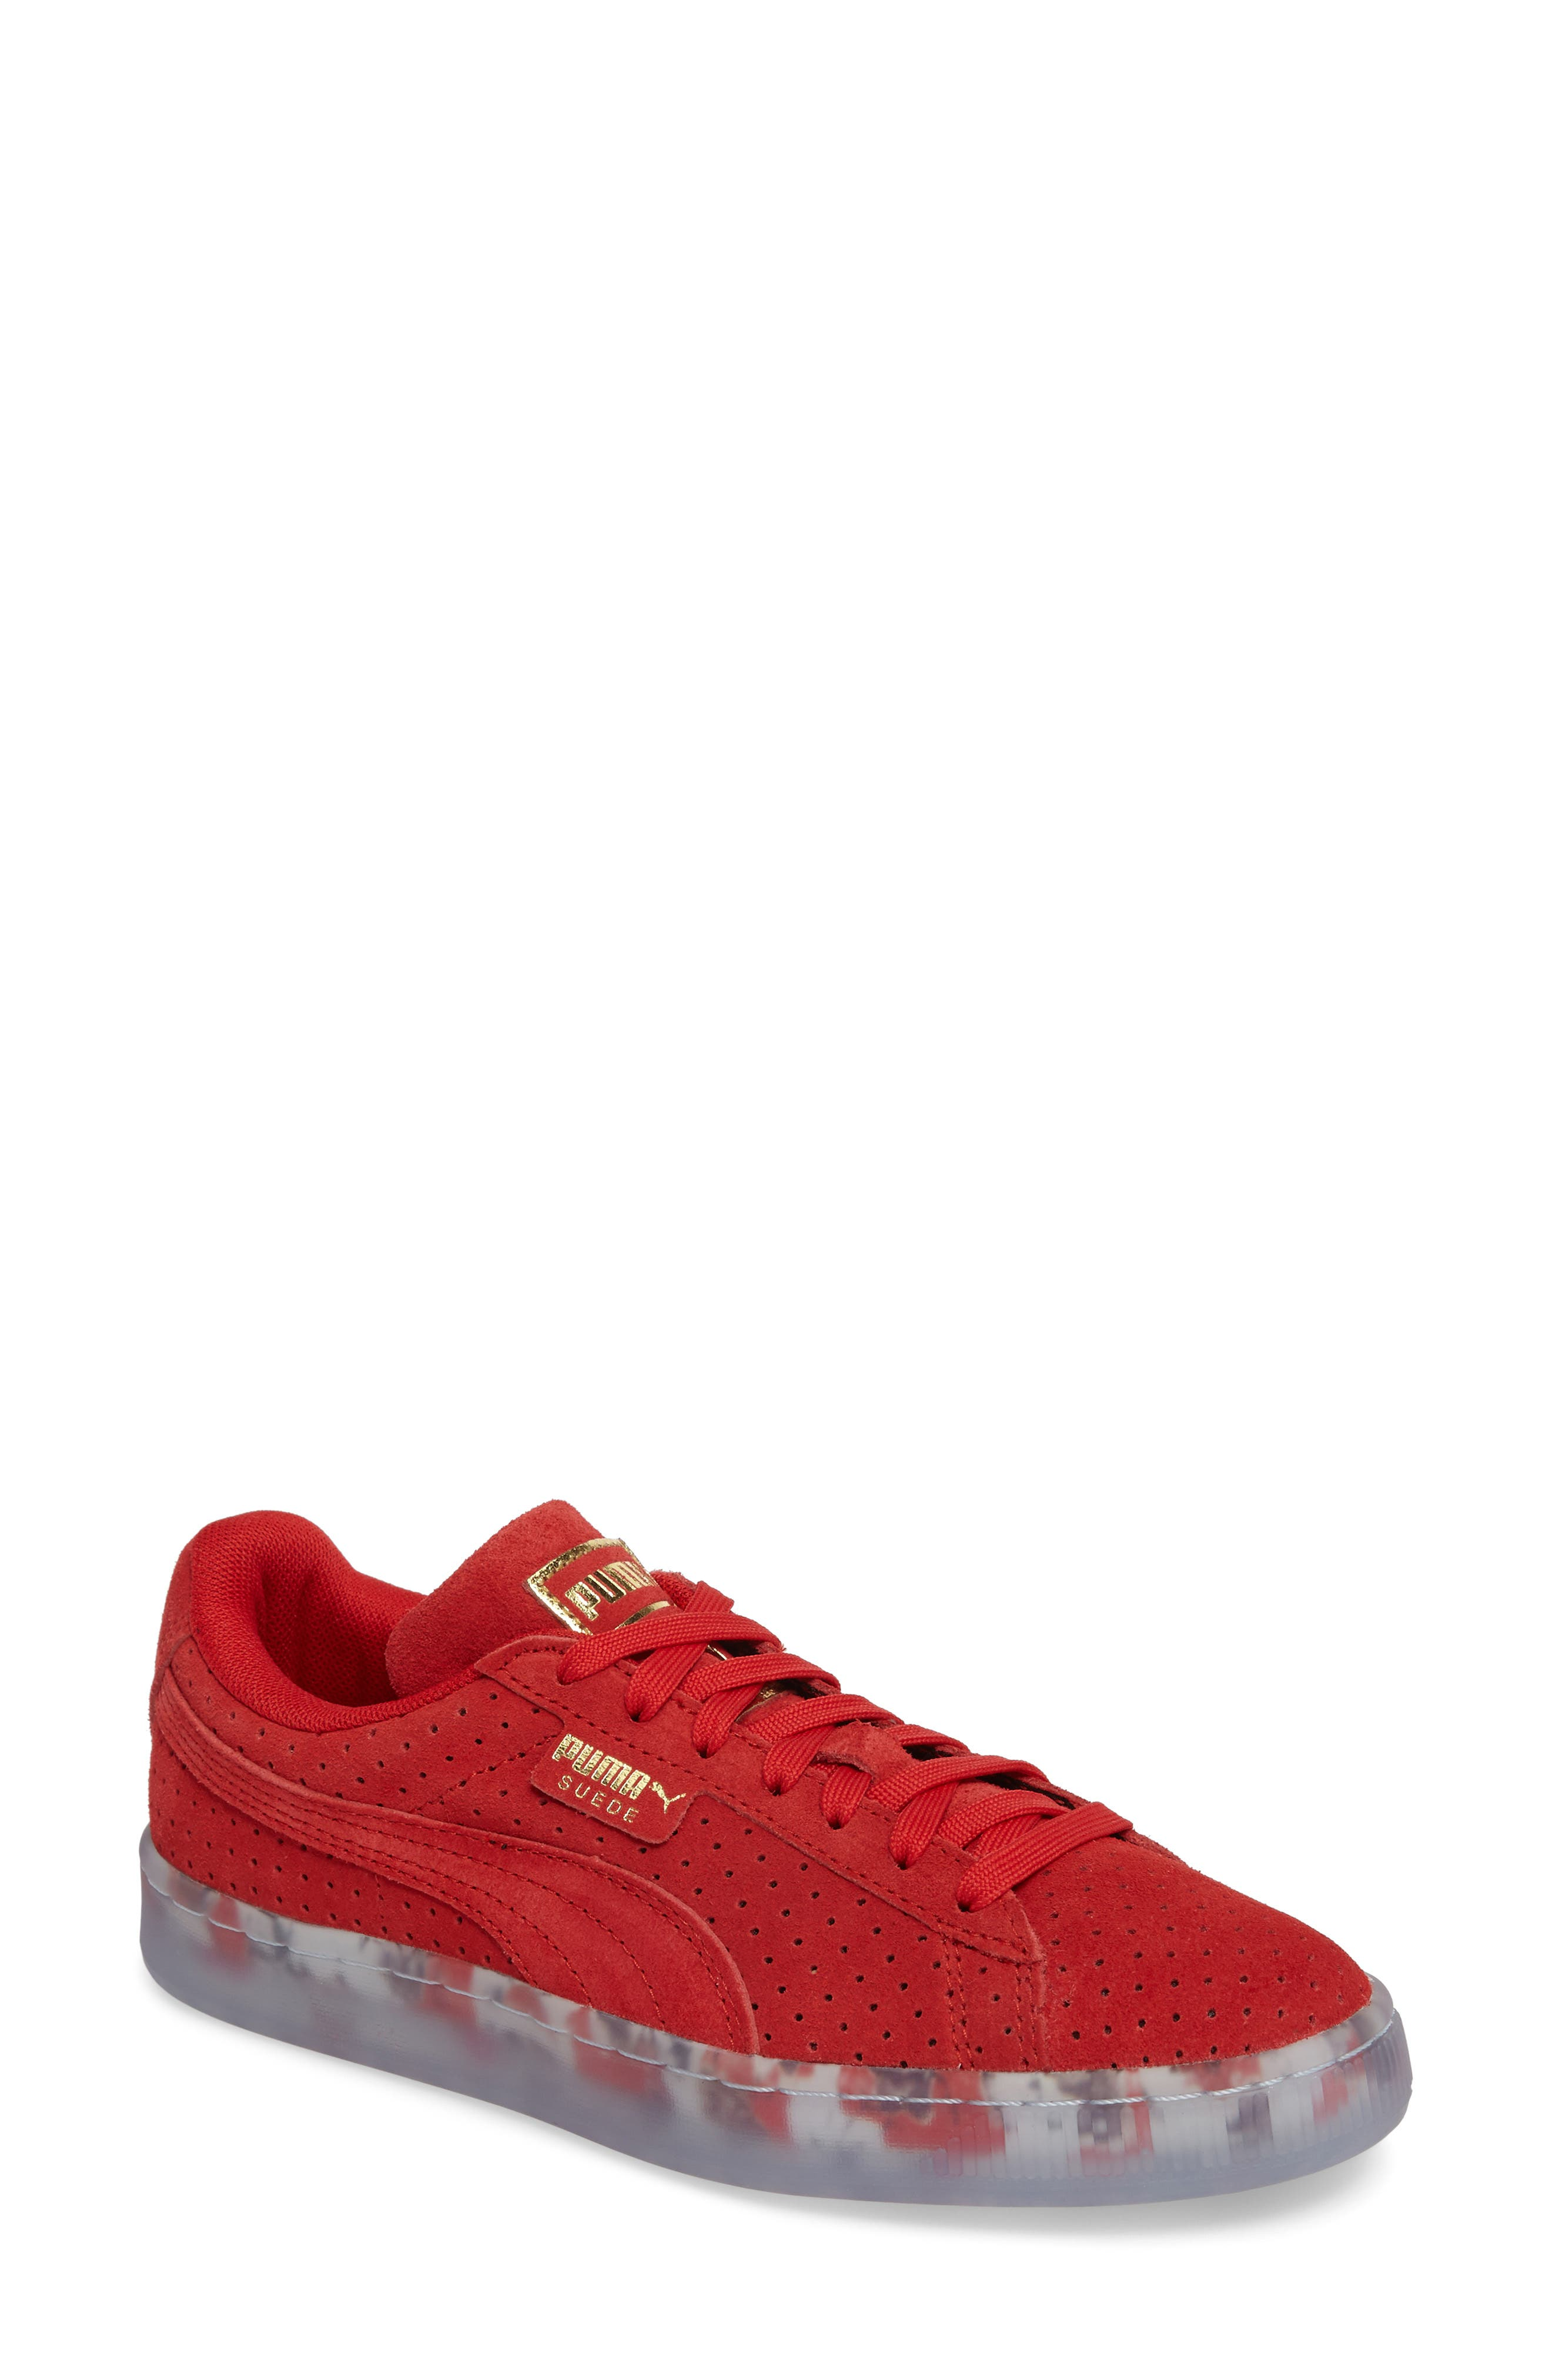 PUMA Suede Classic Perforated Sneaker (Women)